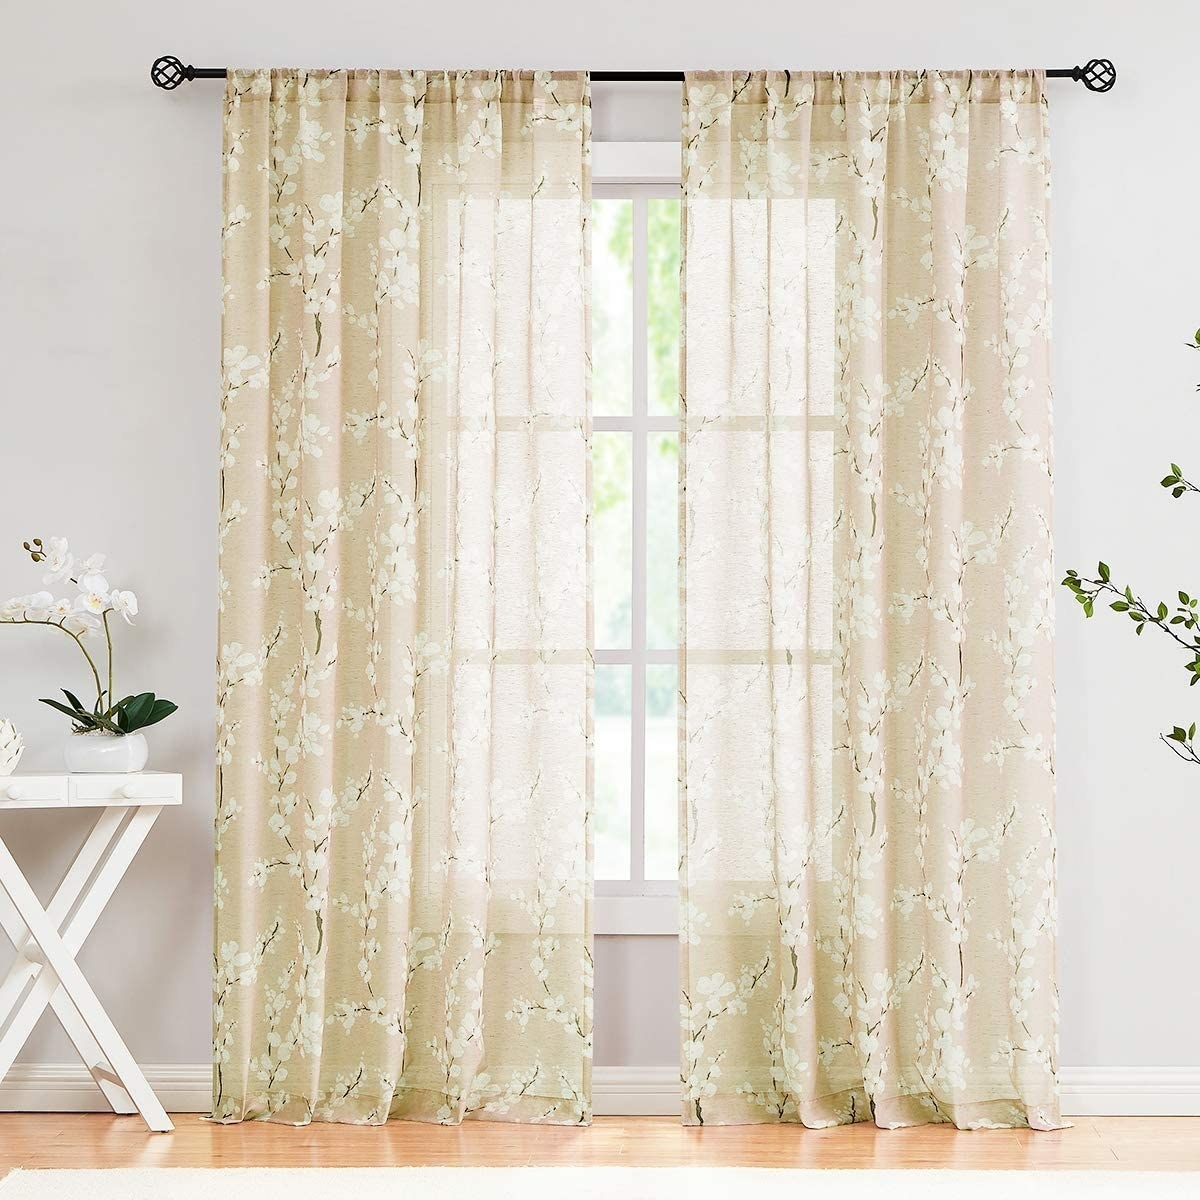 A set of sheer curtains on a bright window with small flowers patterned on them